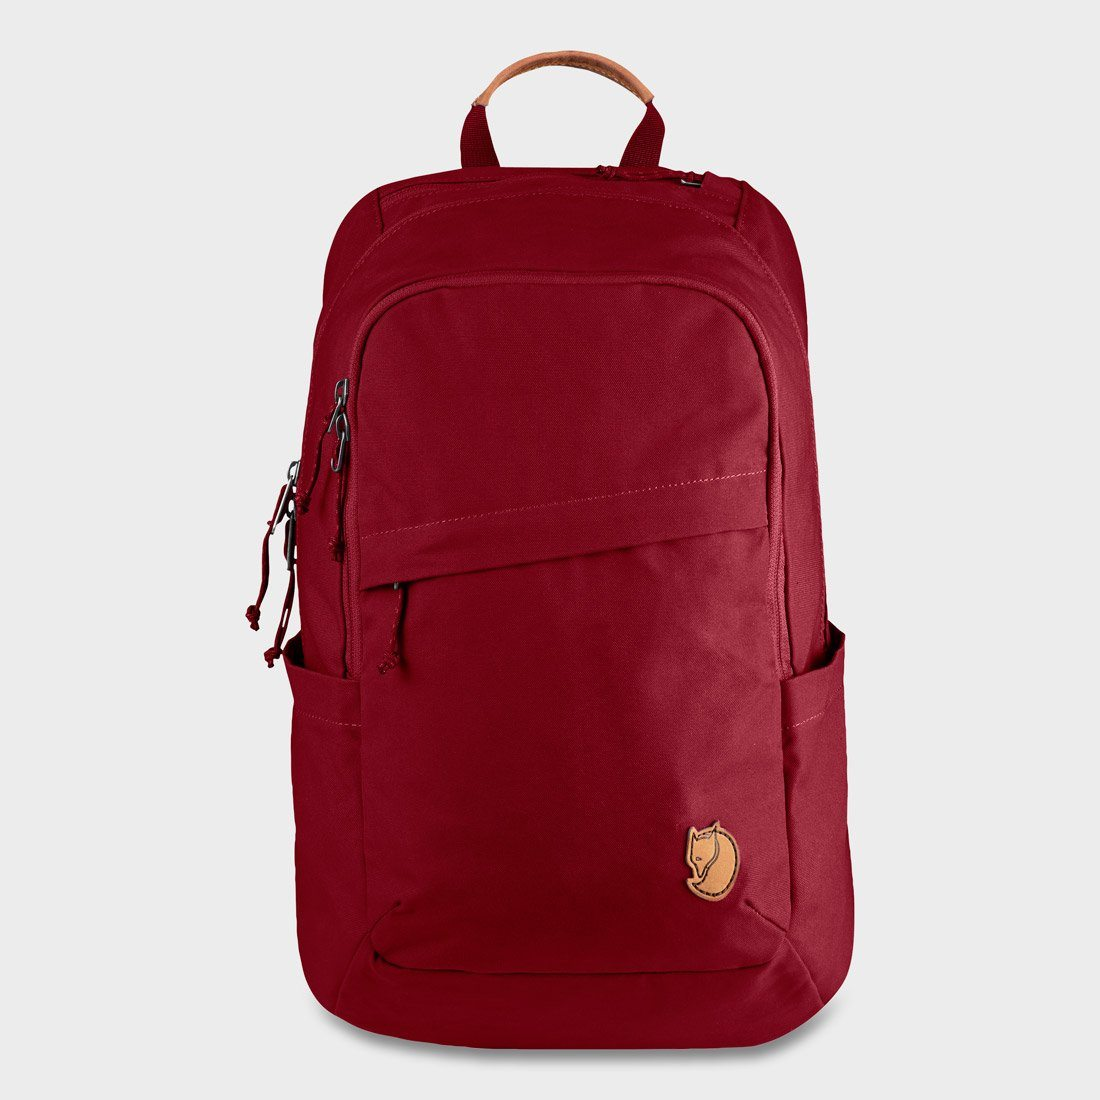 Fjallraven Raven 20 Redwood